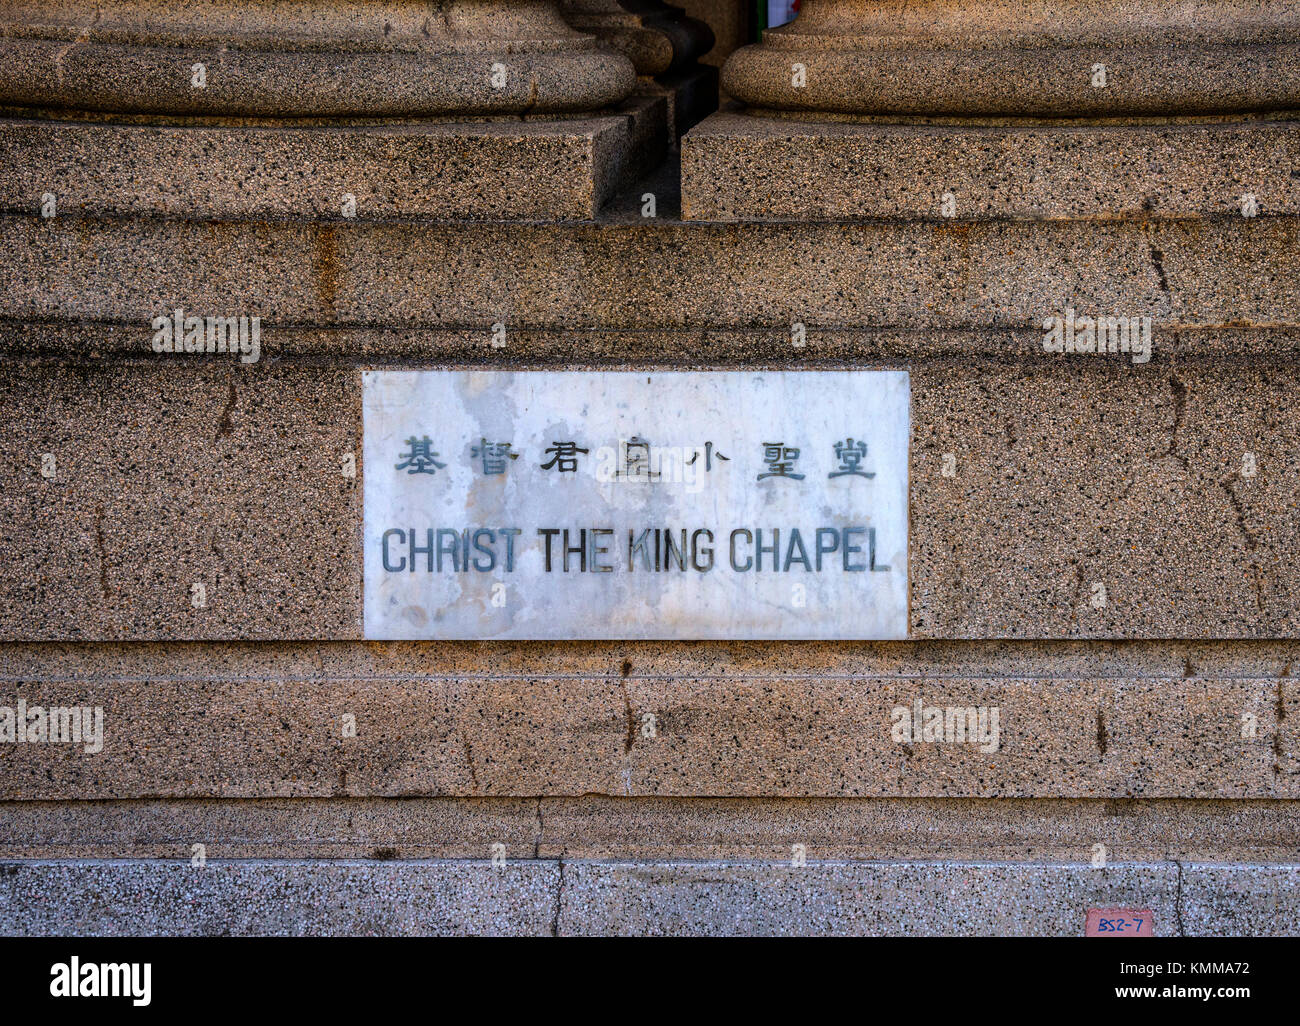 Christ the King Chapel Plaque in Cantonese and English, Christ the King Chapel, Causeway Bay, Hong Kong - Stock Image